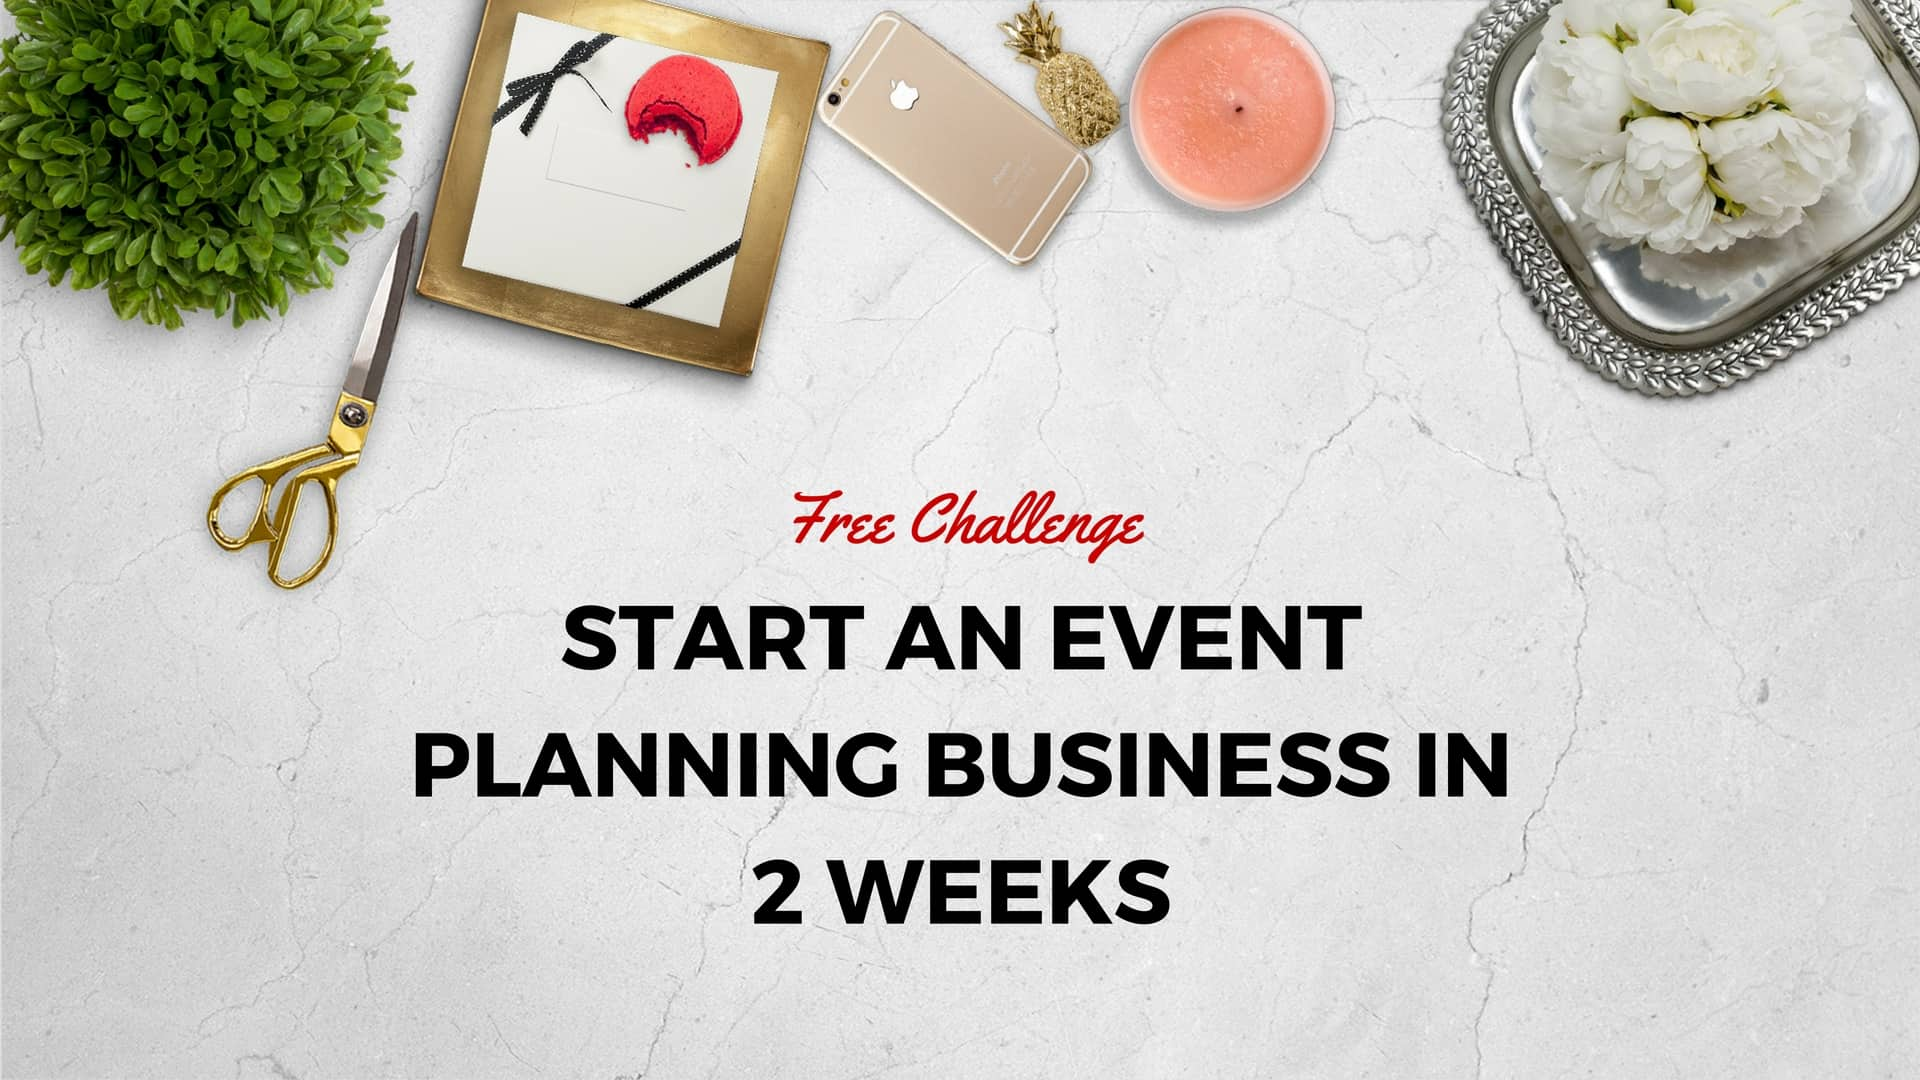 Start an Event Planning Business in 2 Weeks